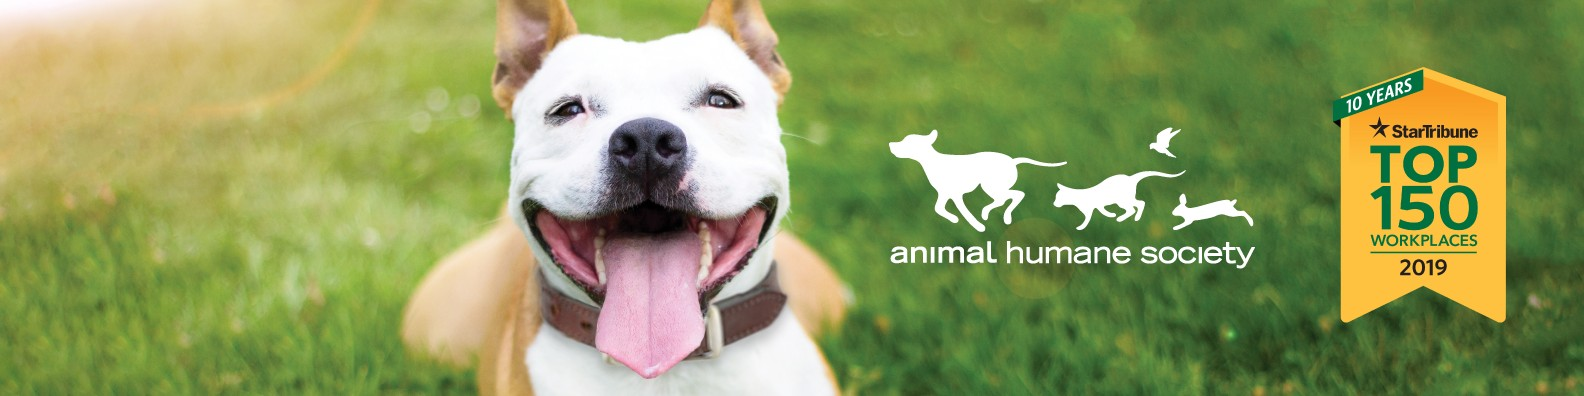 Animal Humane Society Linkedin